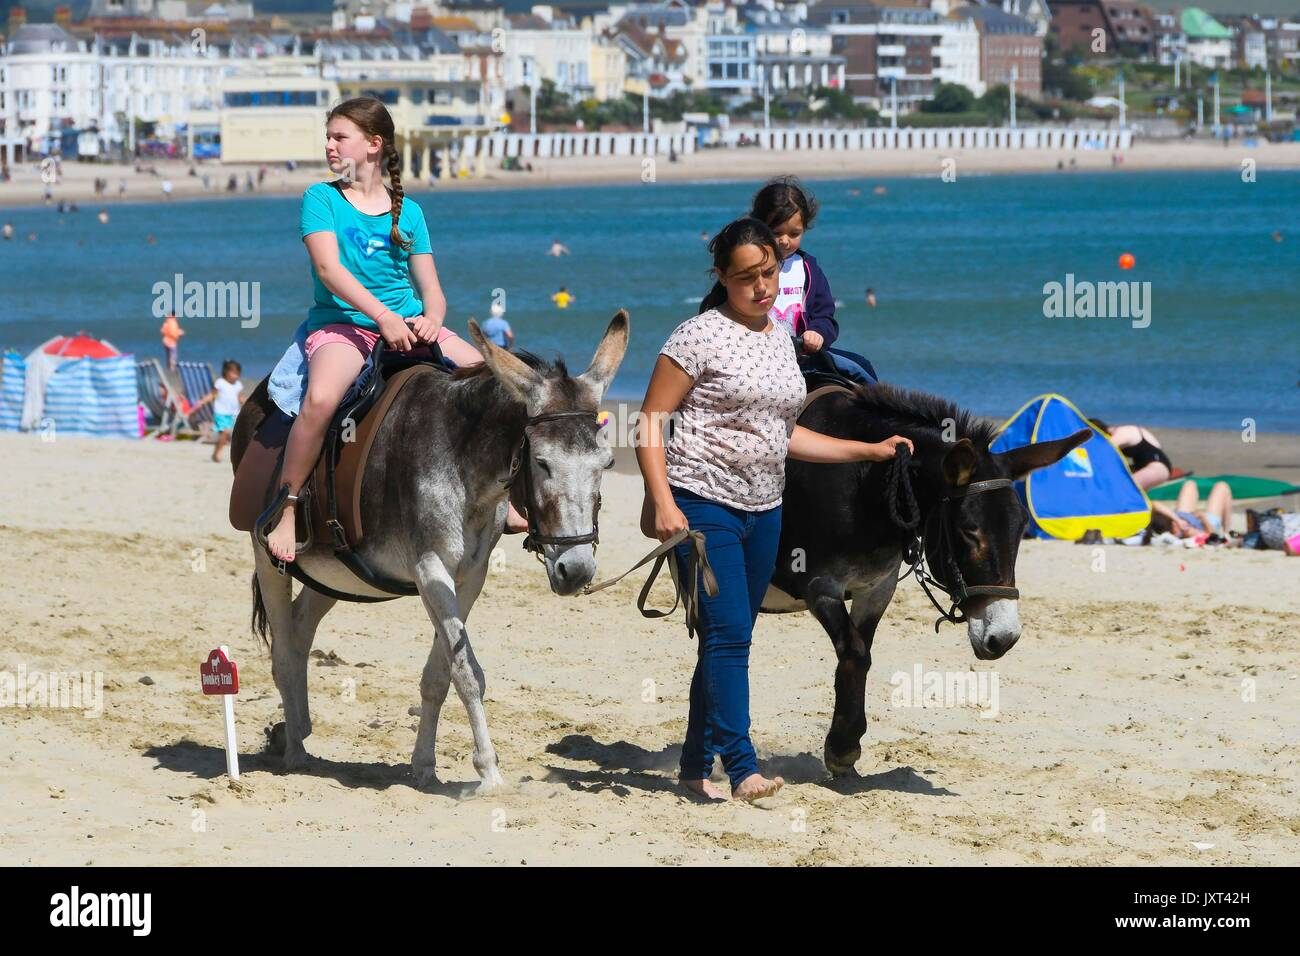 Weymouth, Dorset, UK. 17th Aug, 2017. UK Weather. Children having a donkey ride on the beach during the warm sunny Stock Photo